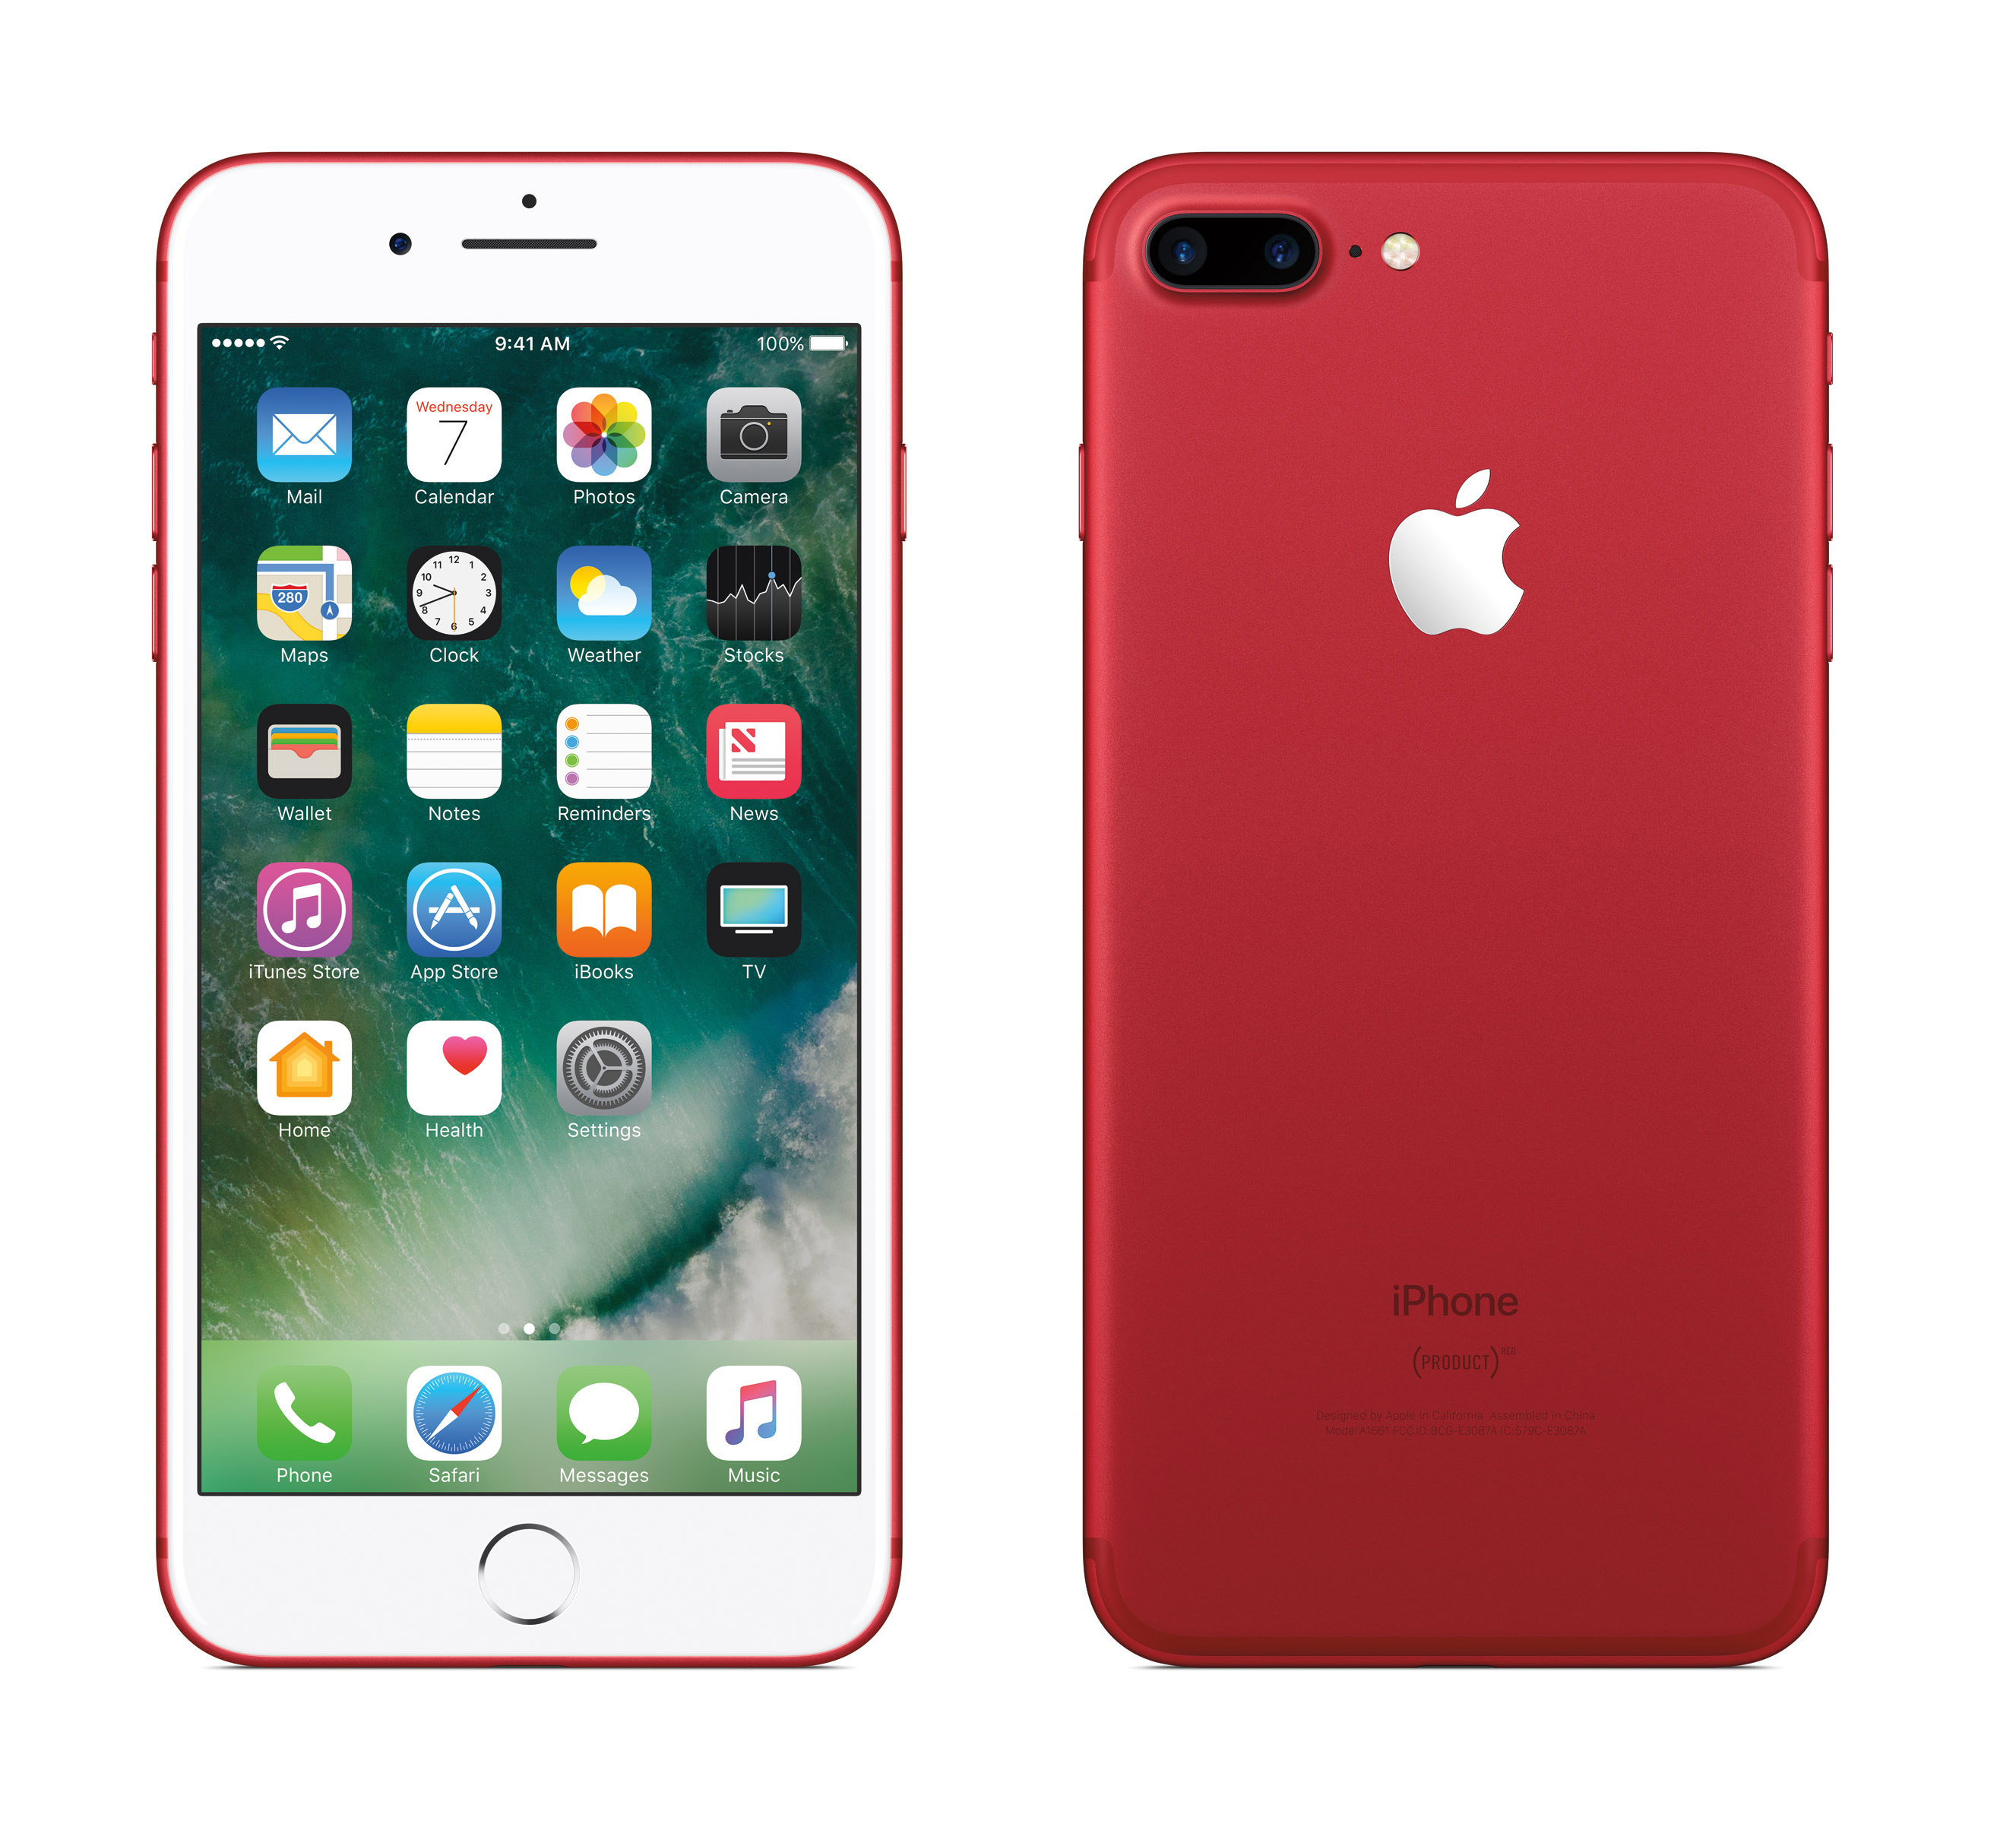 Apple iPhone 7 in red